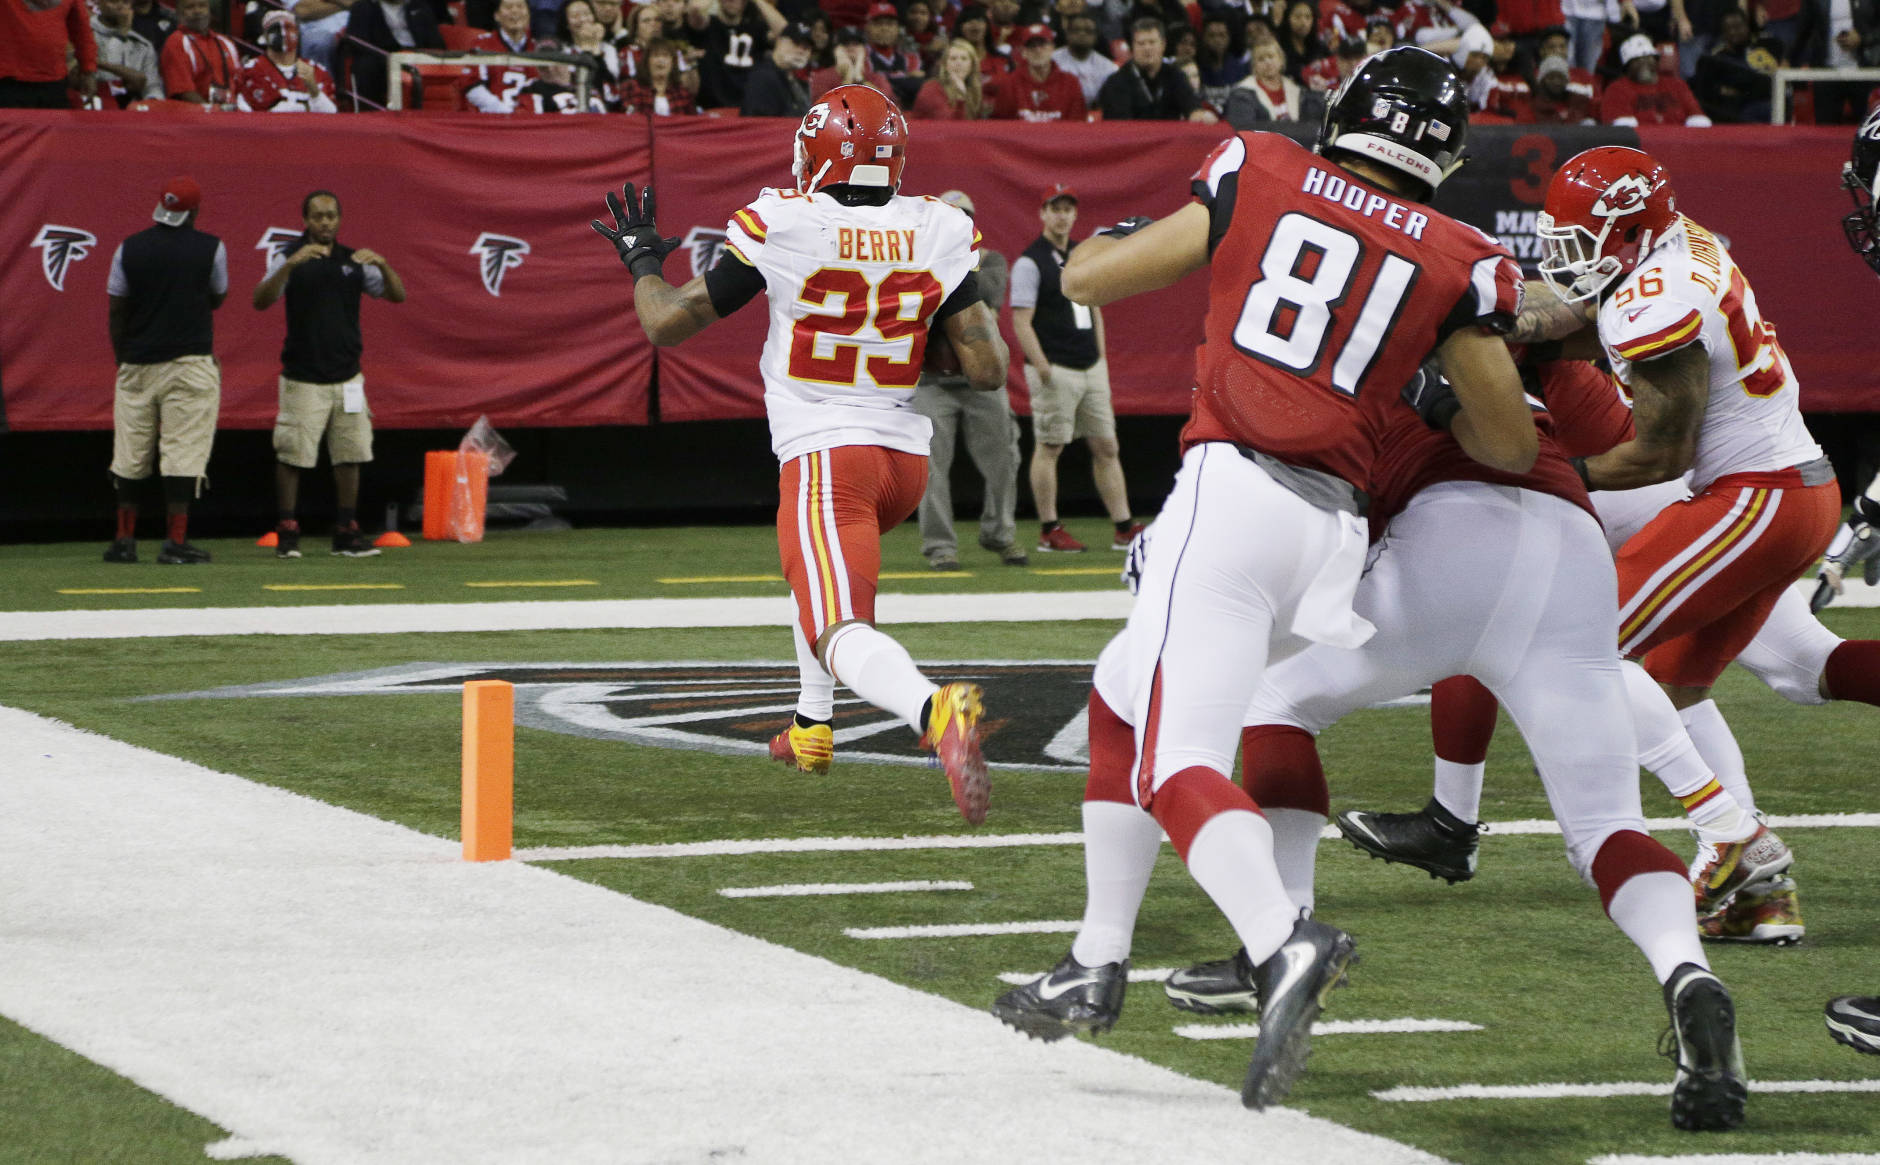 Kansas City Chiefs strong safety Eric Berry (29) scores a touchdown on an interception against the Atlanta Falcons during the first half of an NFL football game, Sunday, Dec. 4, 2016, in Atlanta. (AP Photo/Chuck Burton)